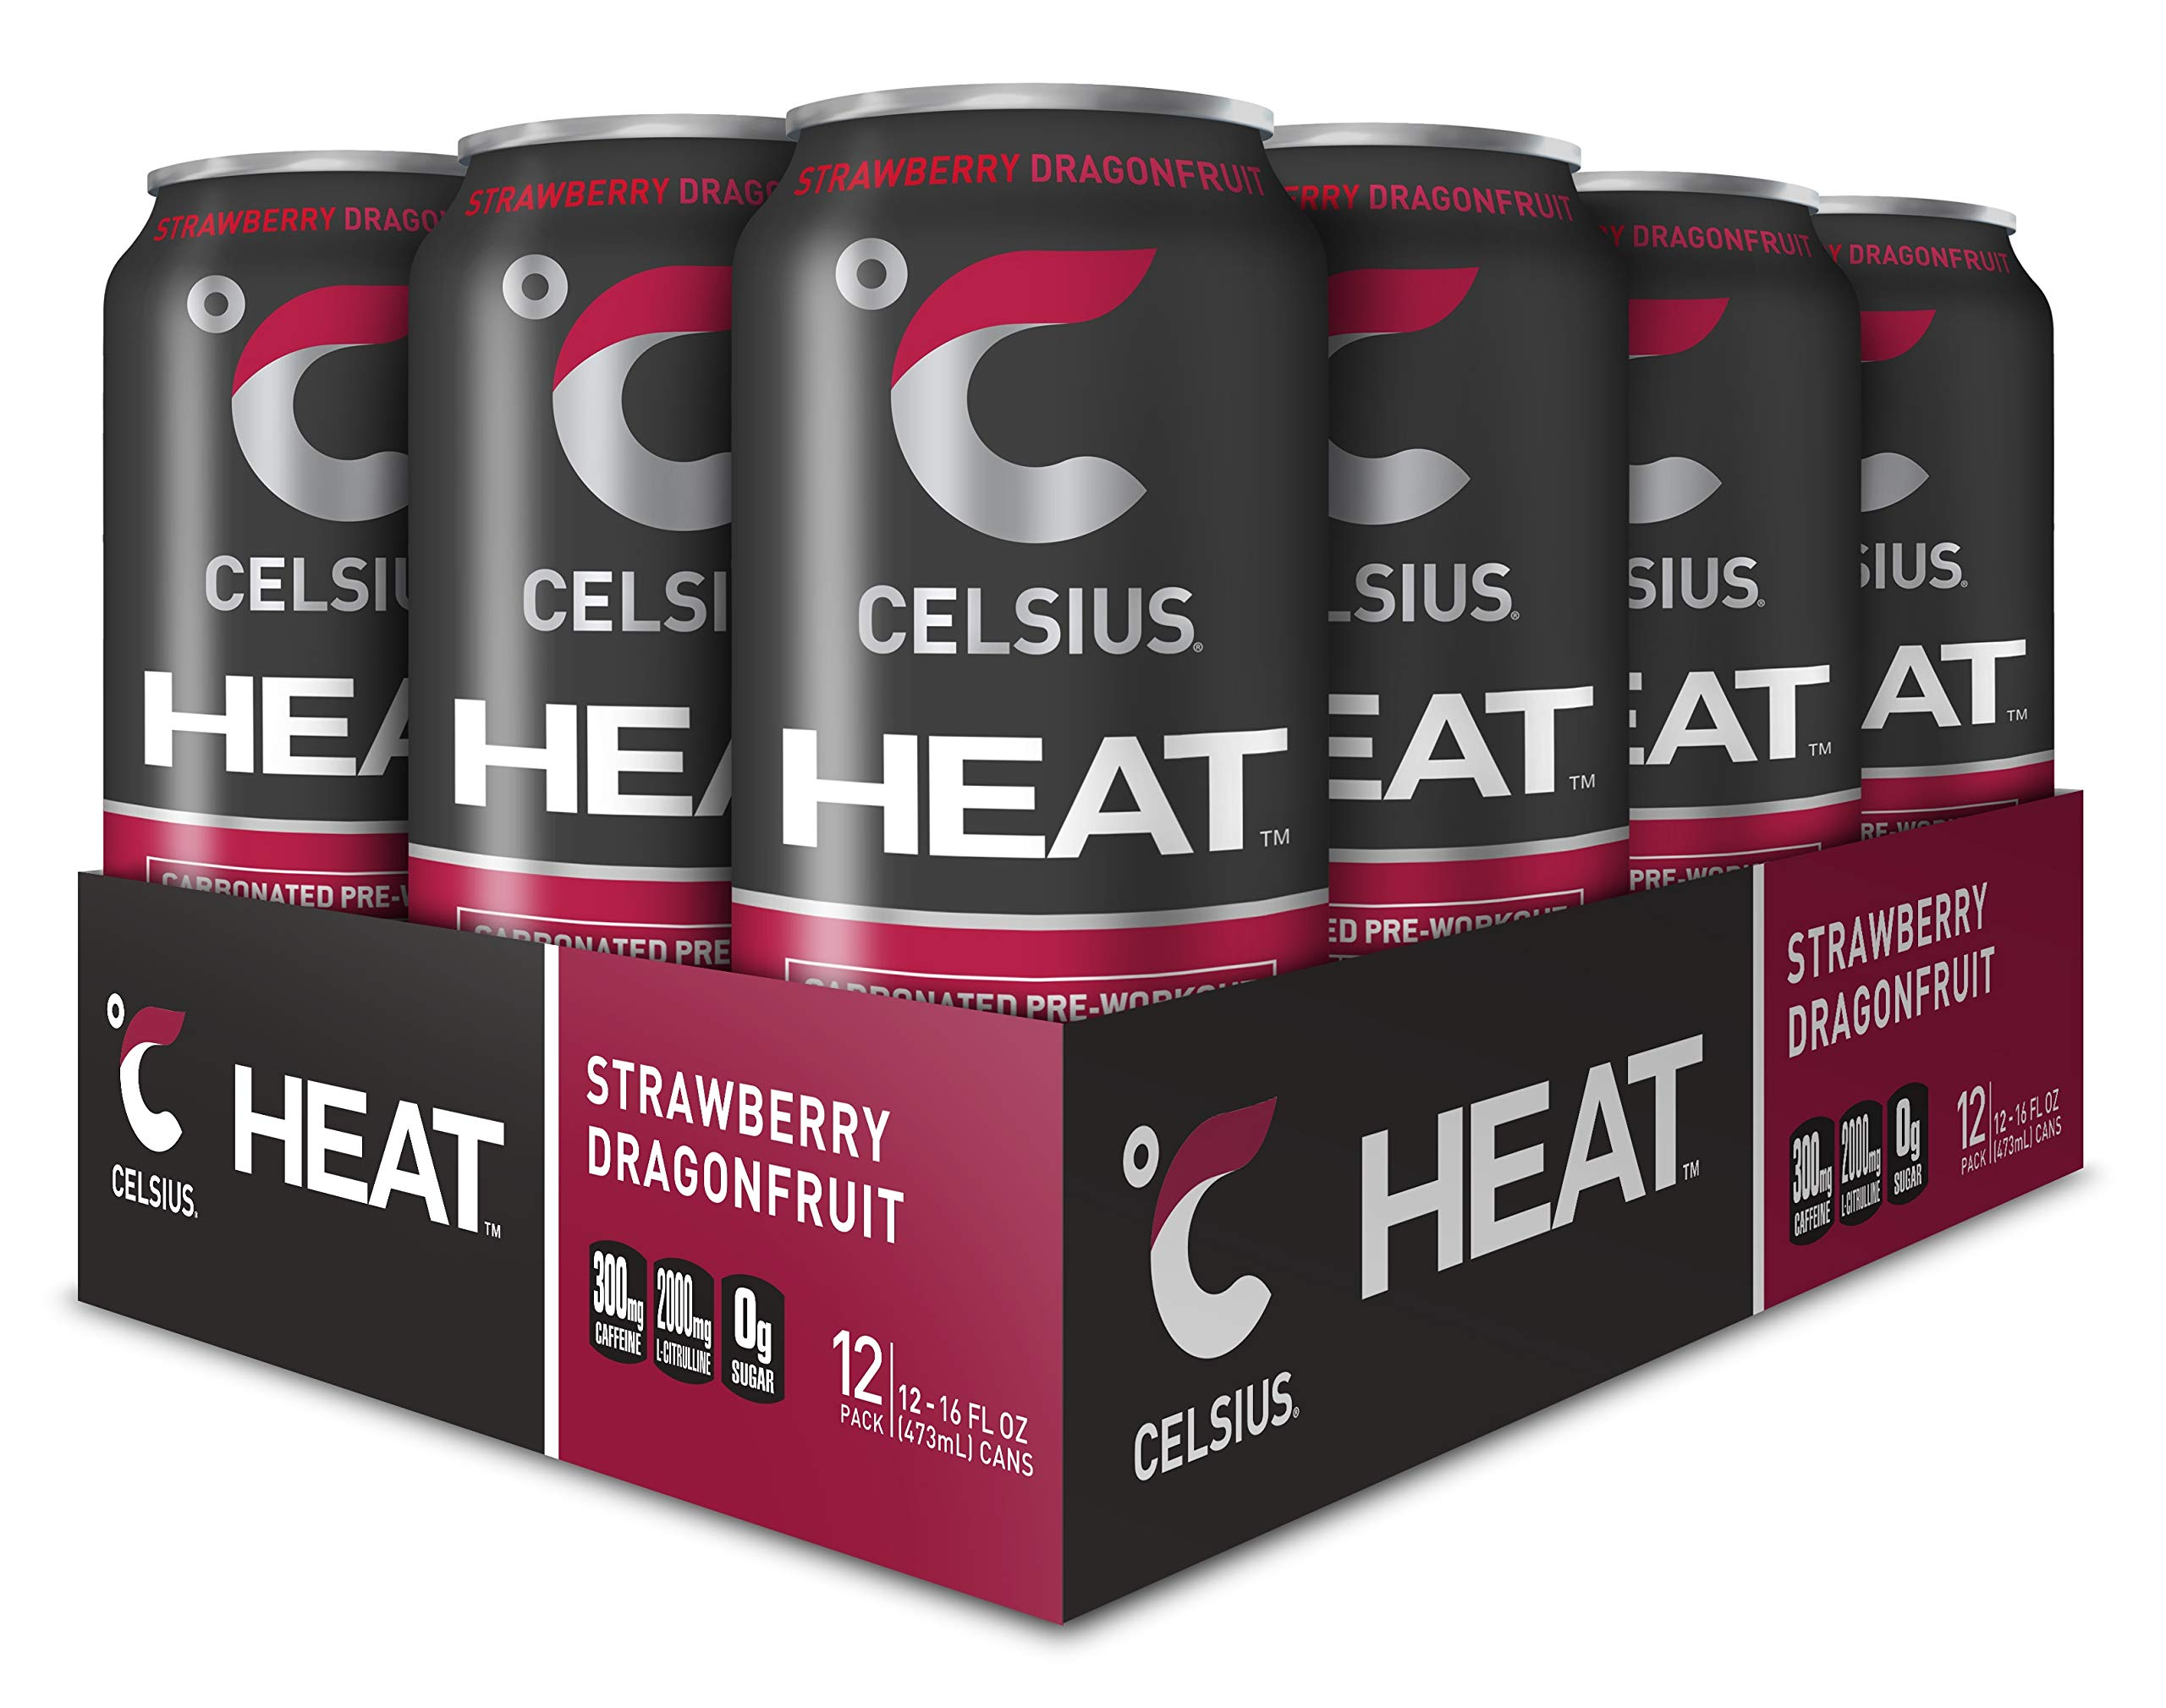 CELSIUS HEAT Strawberry Dragonfruit Performance Energy Drink, ZERO Sugar, 16oz. Can, 12 Pack by CELSIUS